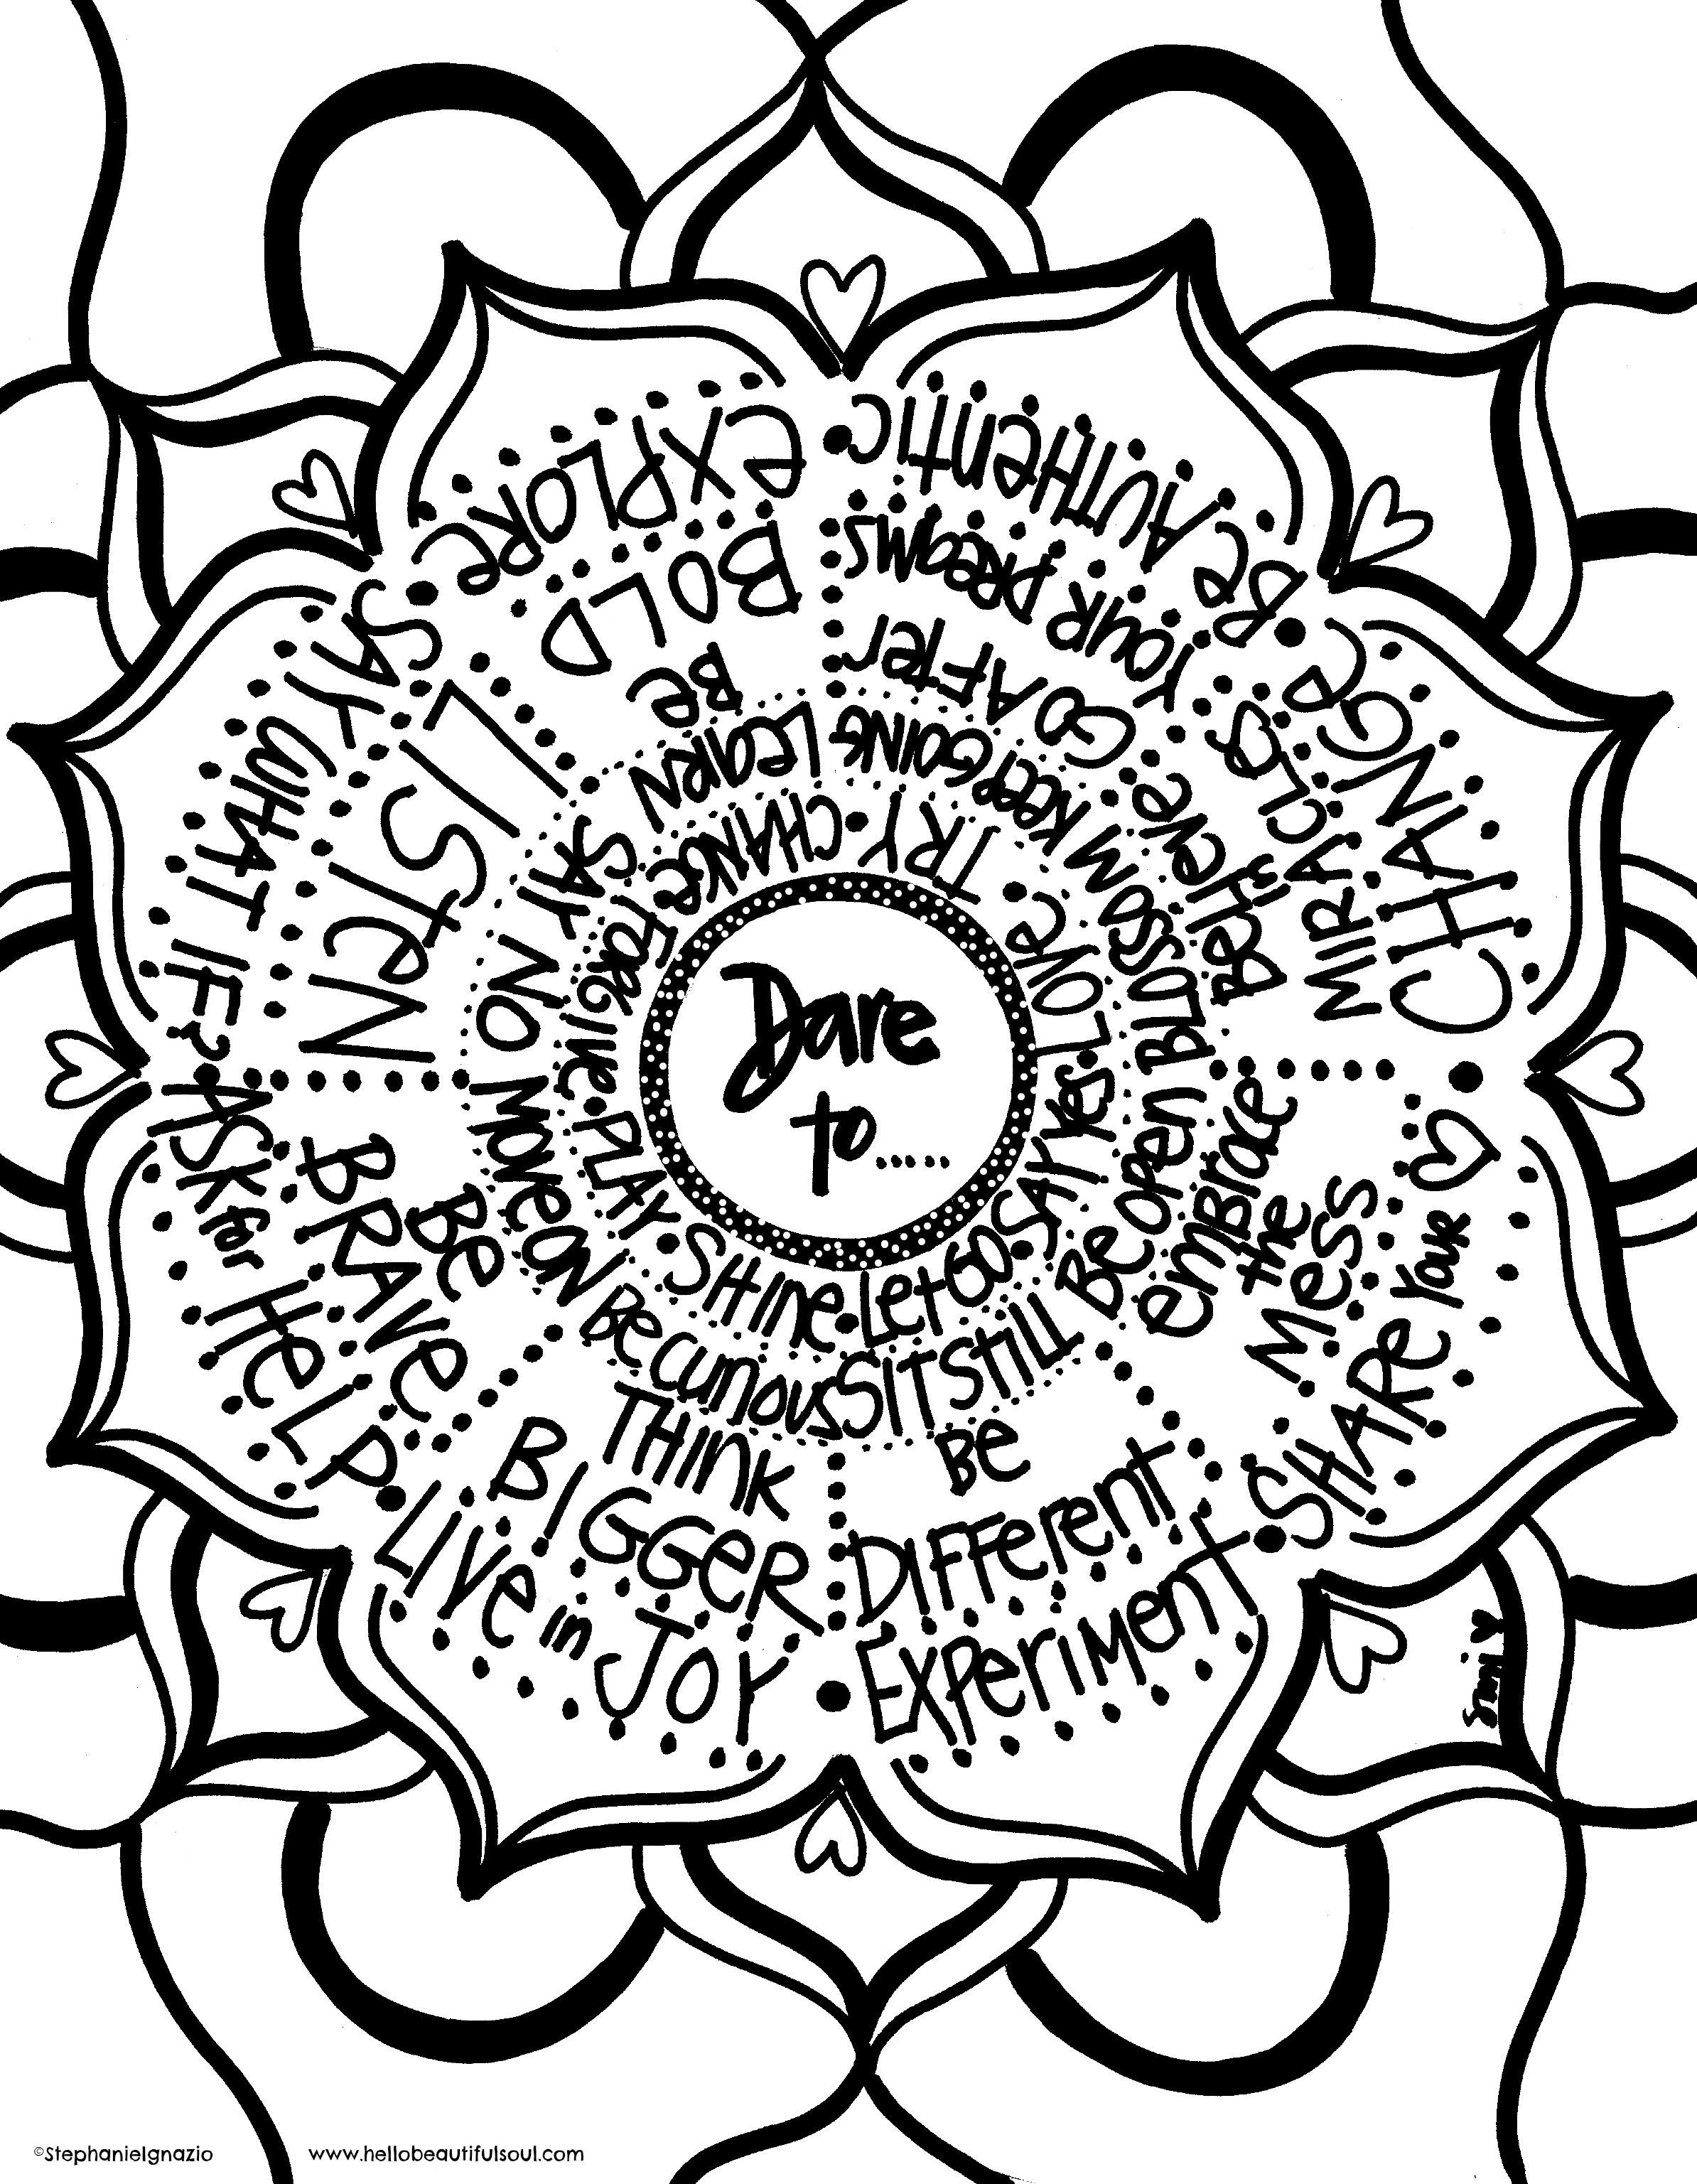 Dare To Coloring Page Free Printable On Hello Beautiful Soul Blog